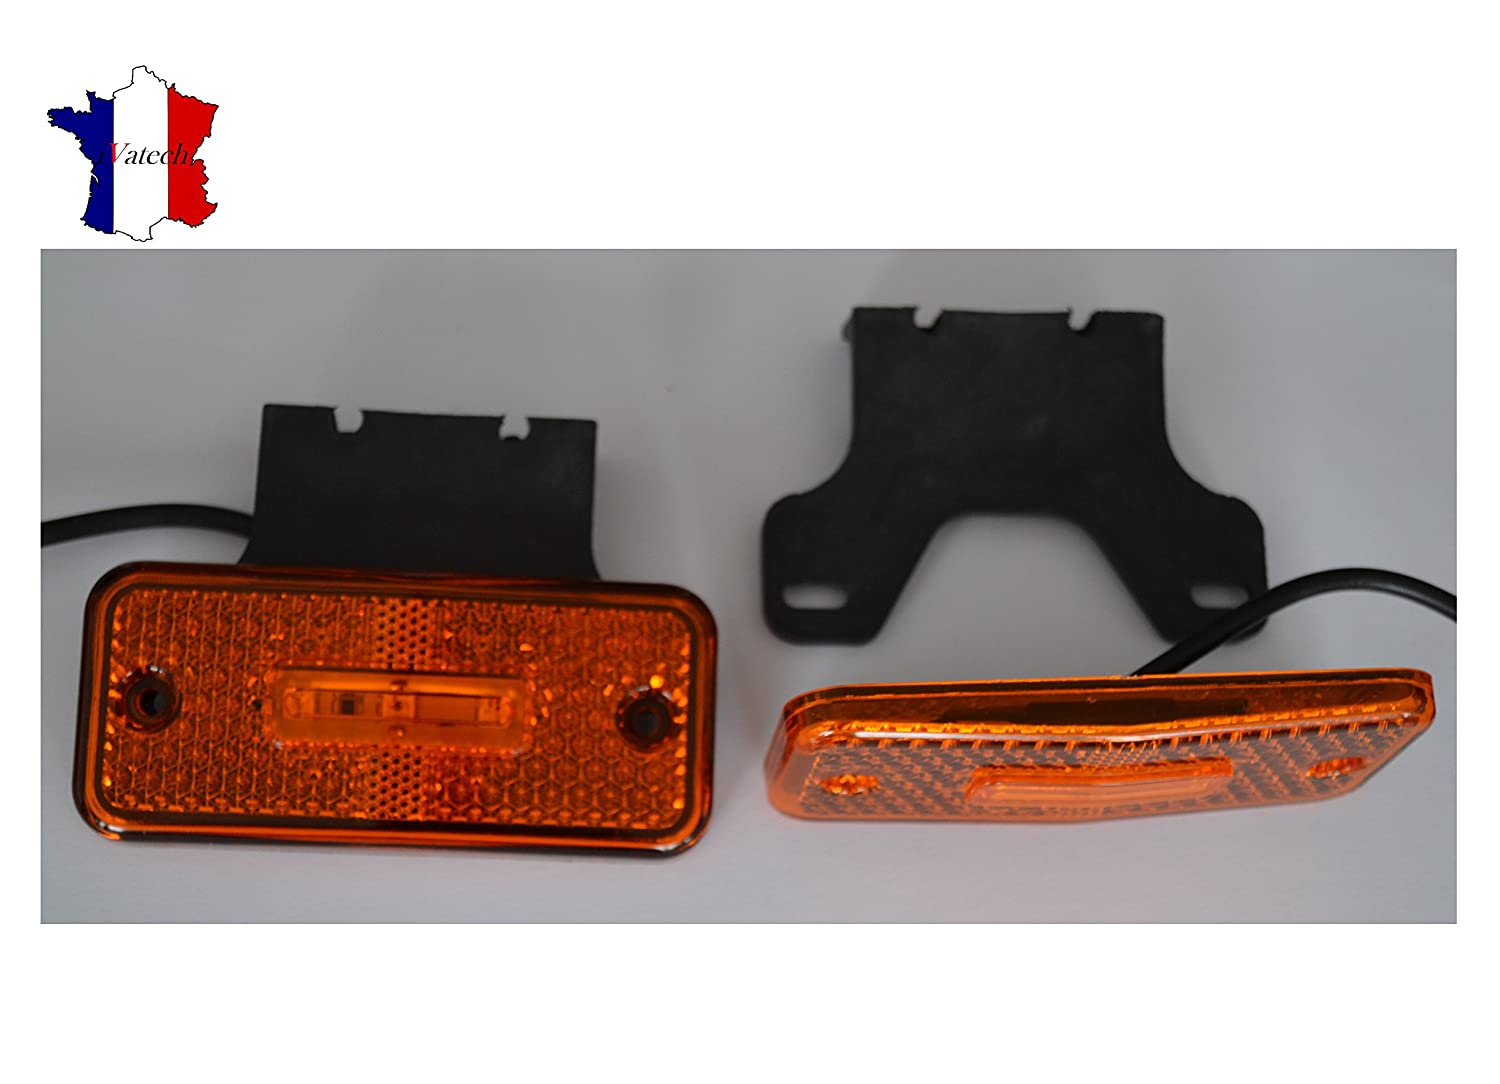 2 X 12V 3 LED FEUX DE POSITION/GABARIT ORANGE CAMION REMORQUE BUS VAN SHASSIS SIALENI